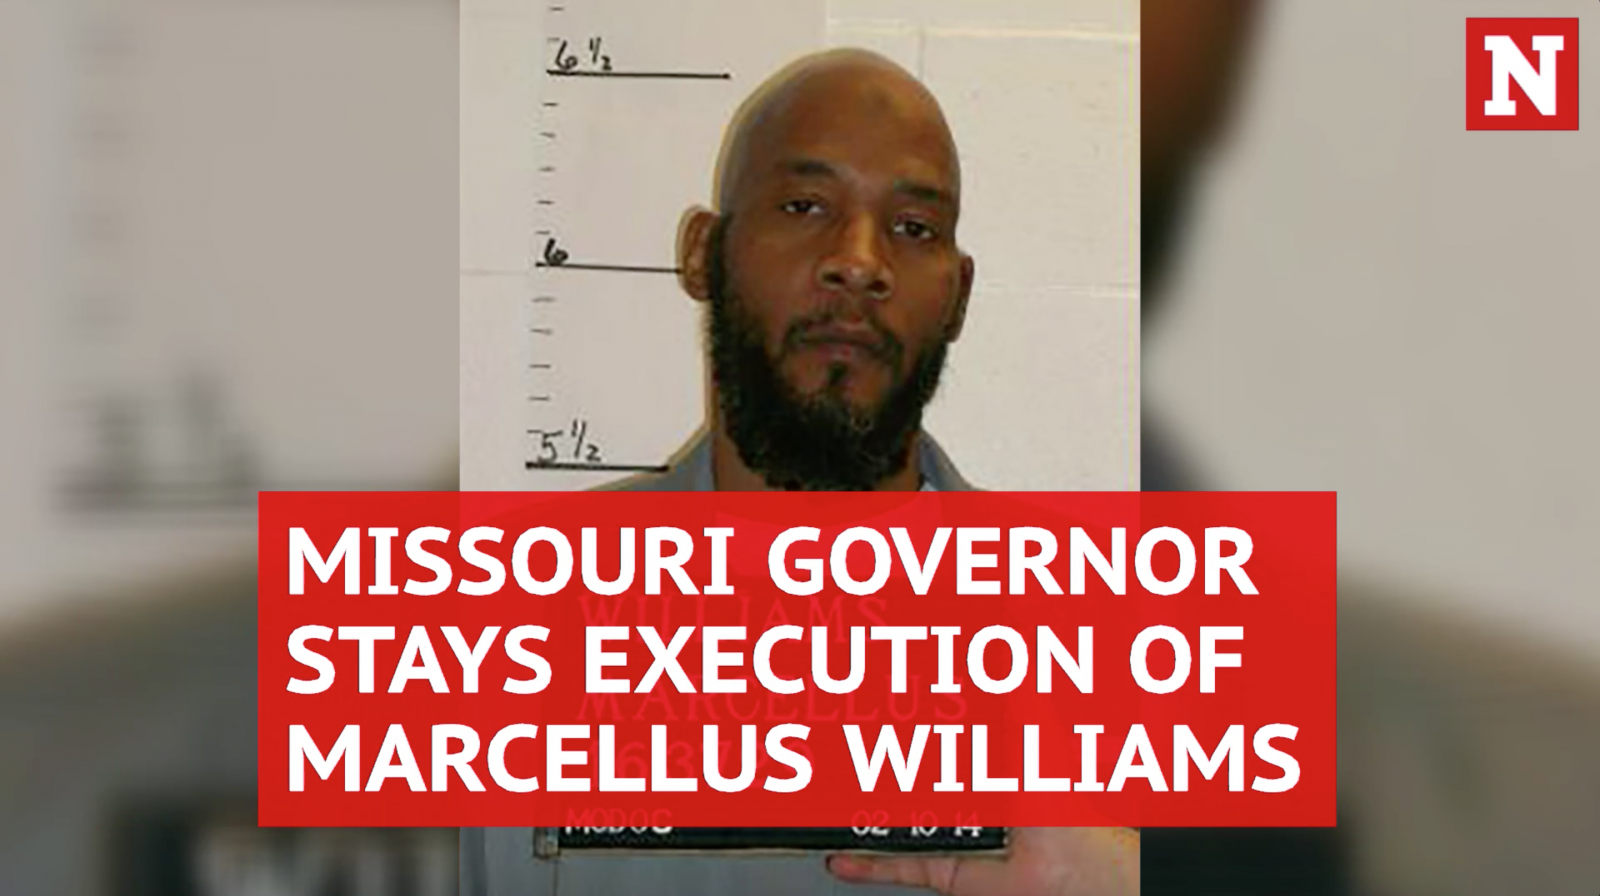 Missouri governor stays execution of Marcellus Williams